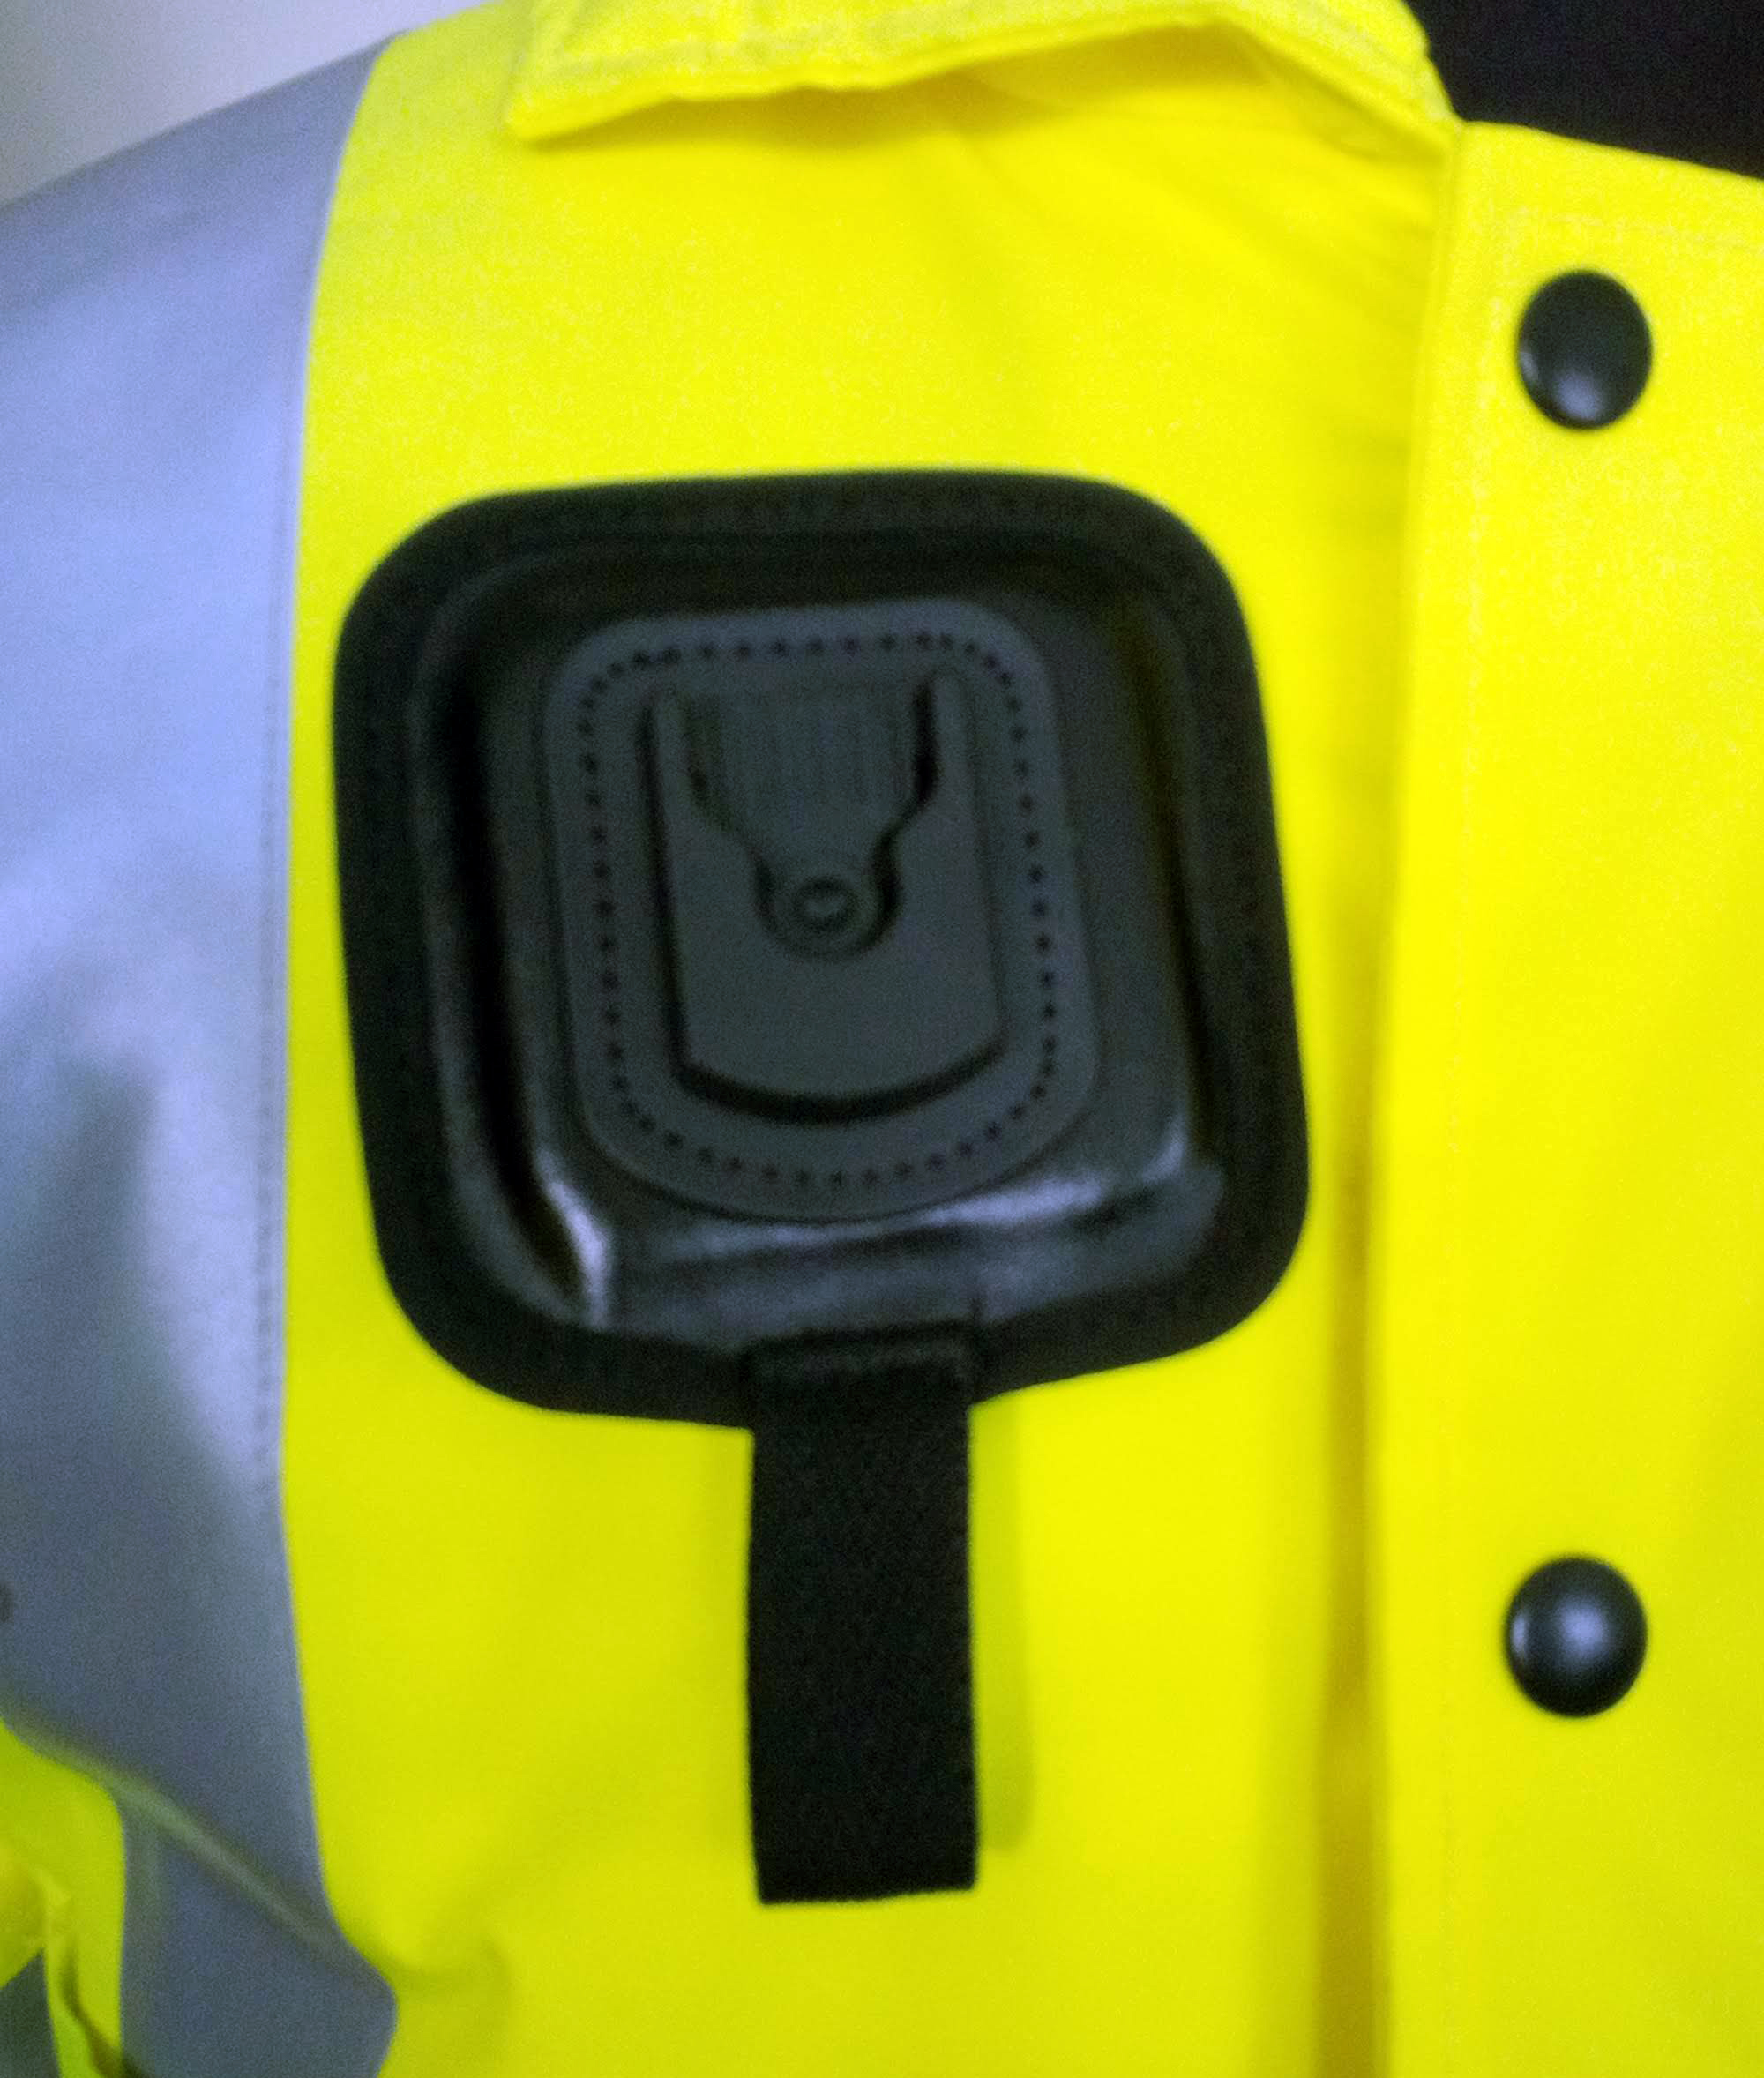 Magnetic Click-On dock on jacket